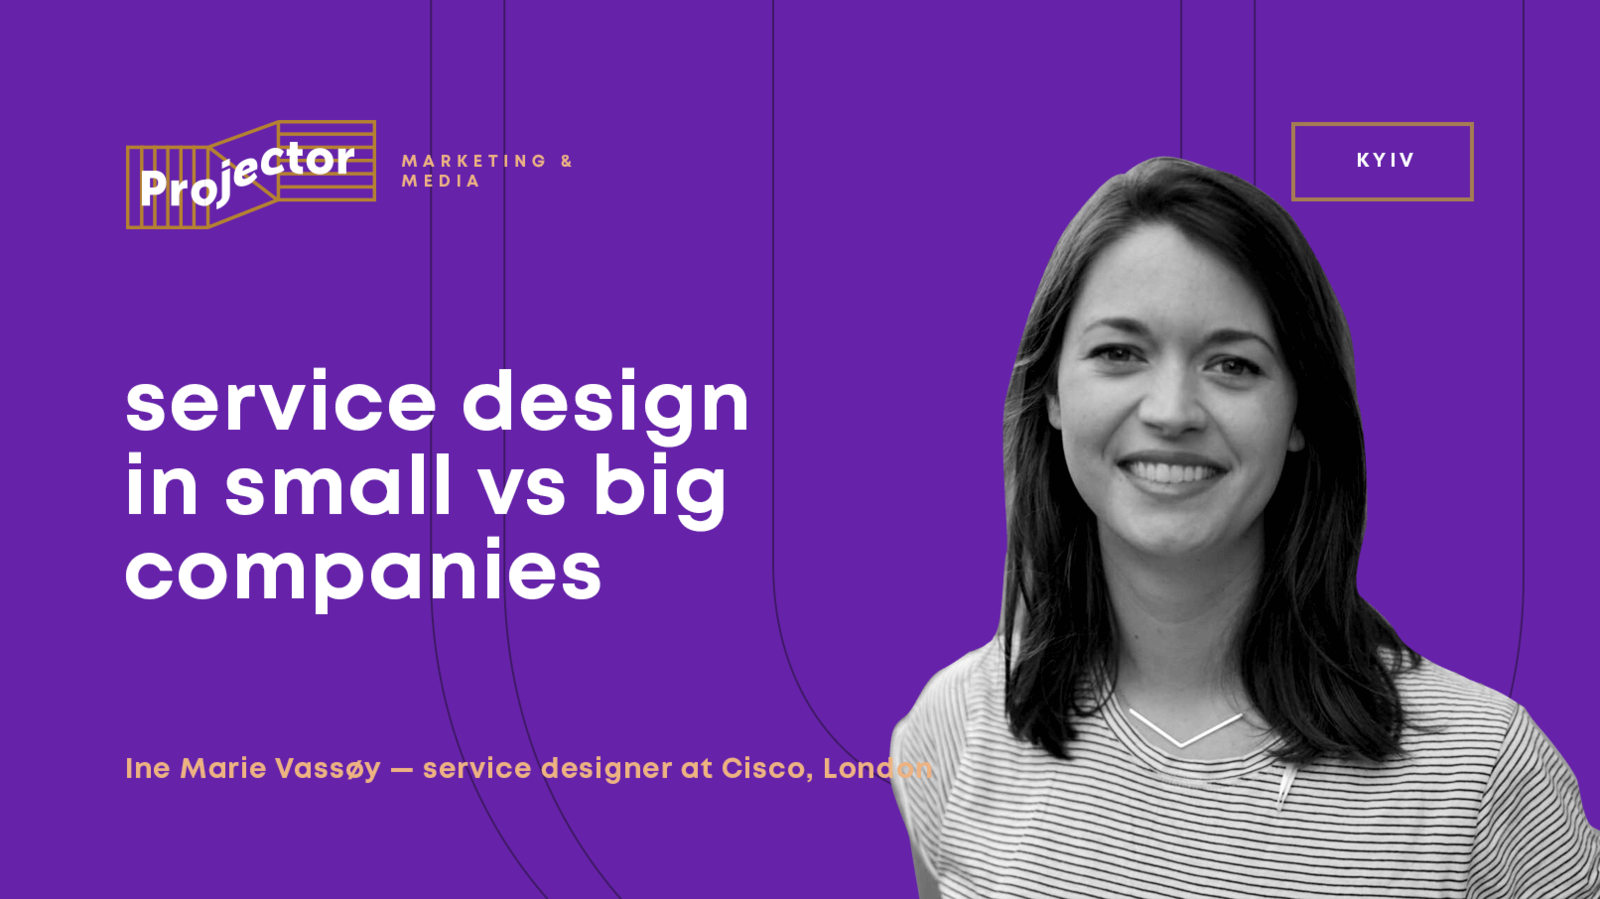 «Service design in small VS big companies»